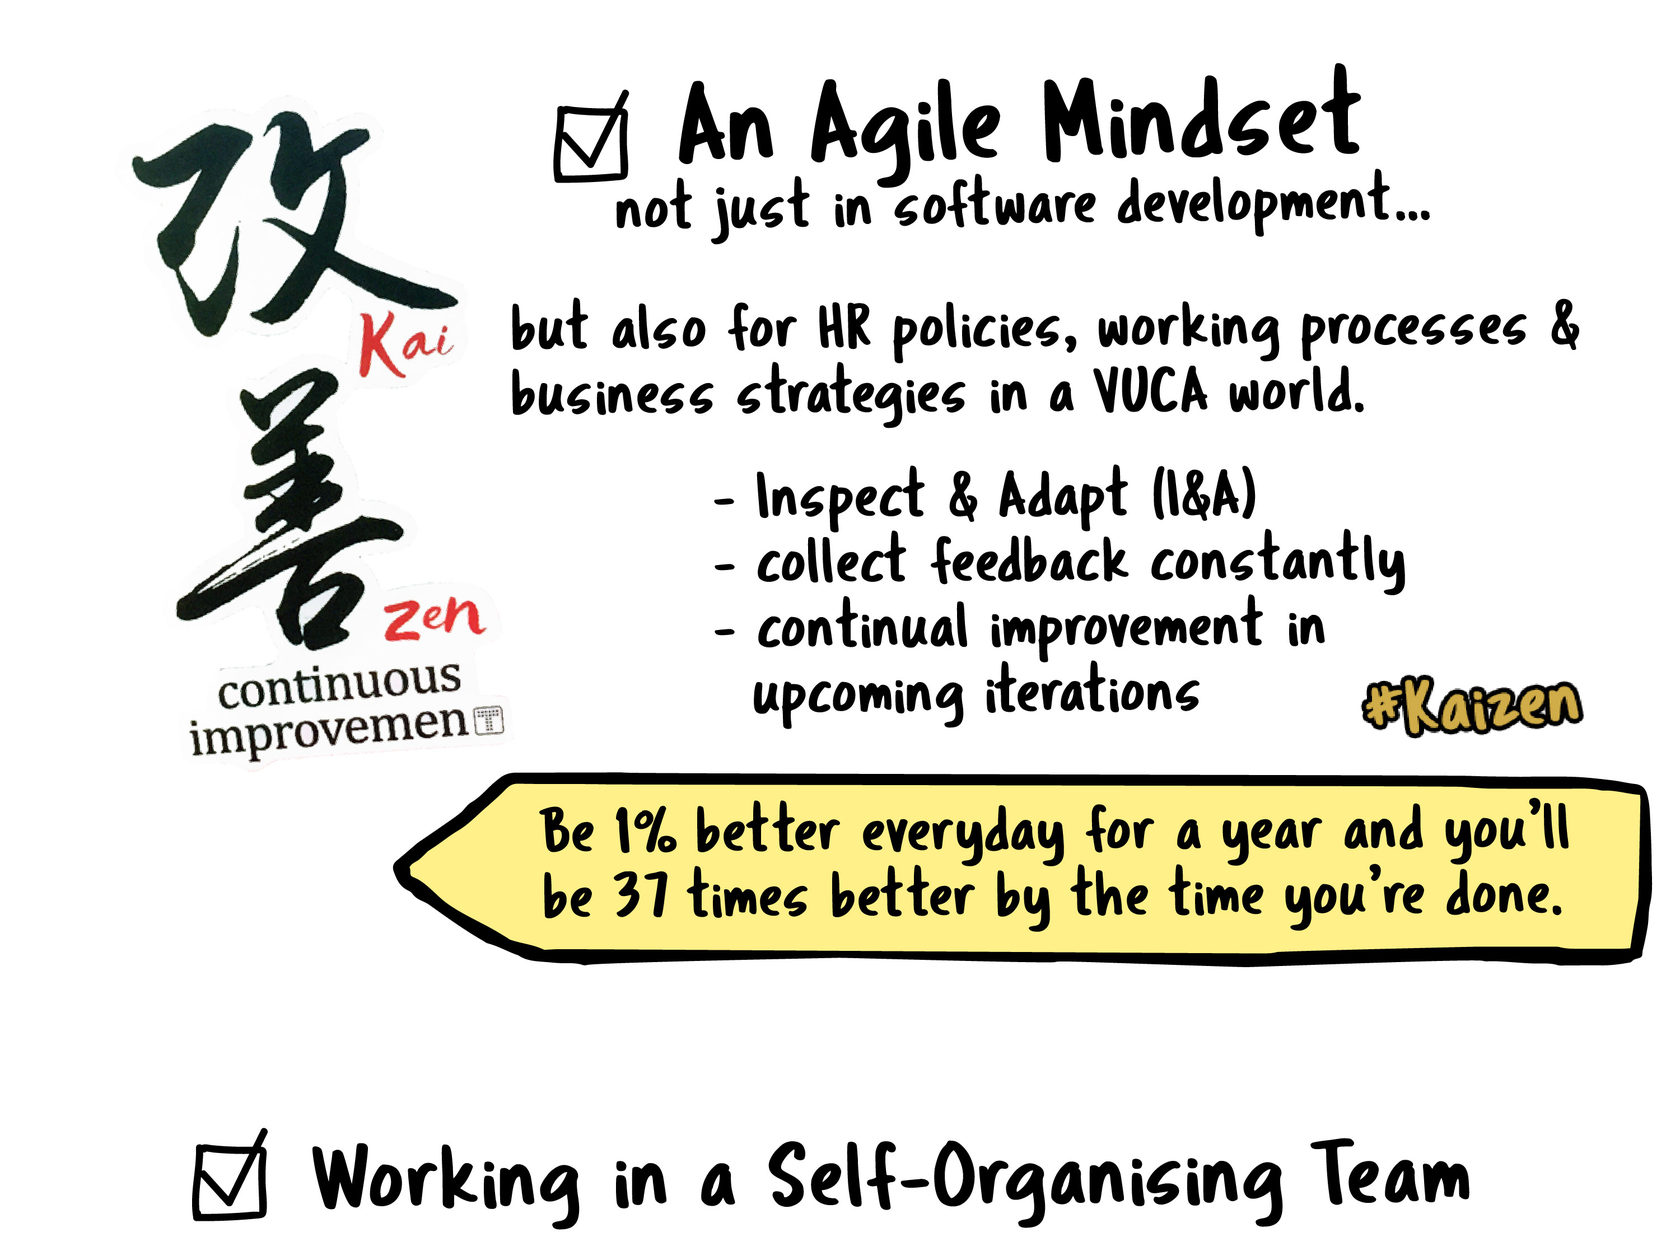 #2 Agile mindset. It is simply to Inspect and Adapt (I&A), and constantly collect feedback to enable continual improvement in upcoming iterations. Basically to improve in small increments or, the Kaizen way of self-improvement based on the idea that small, ongoing positive changes can reap major improvements. An Agile Mindset no just in software development, but or HR policies and business strategies  #KaiZen  Just be 1% better every day for a year and you'll end up 37 times better by the time you're done.